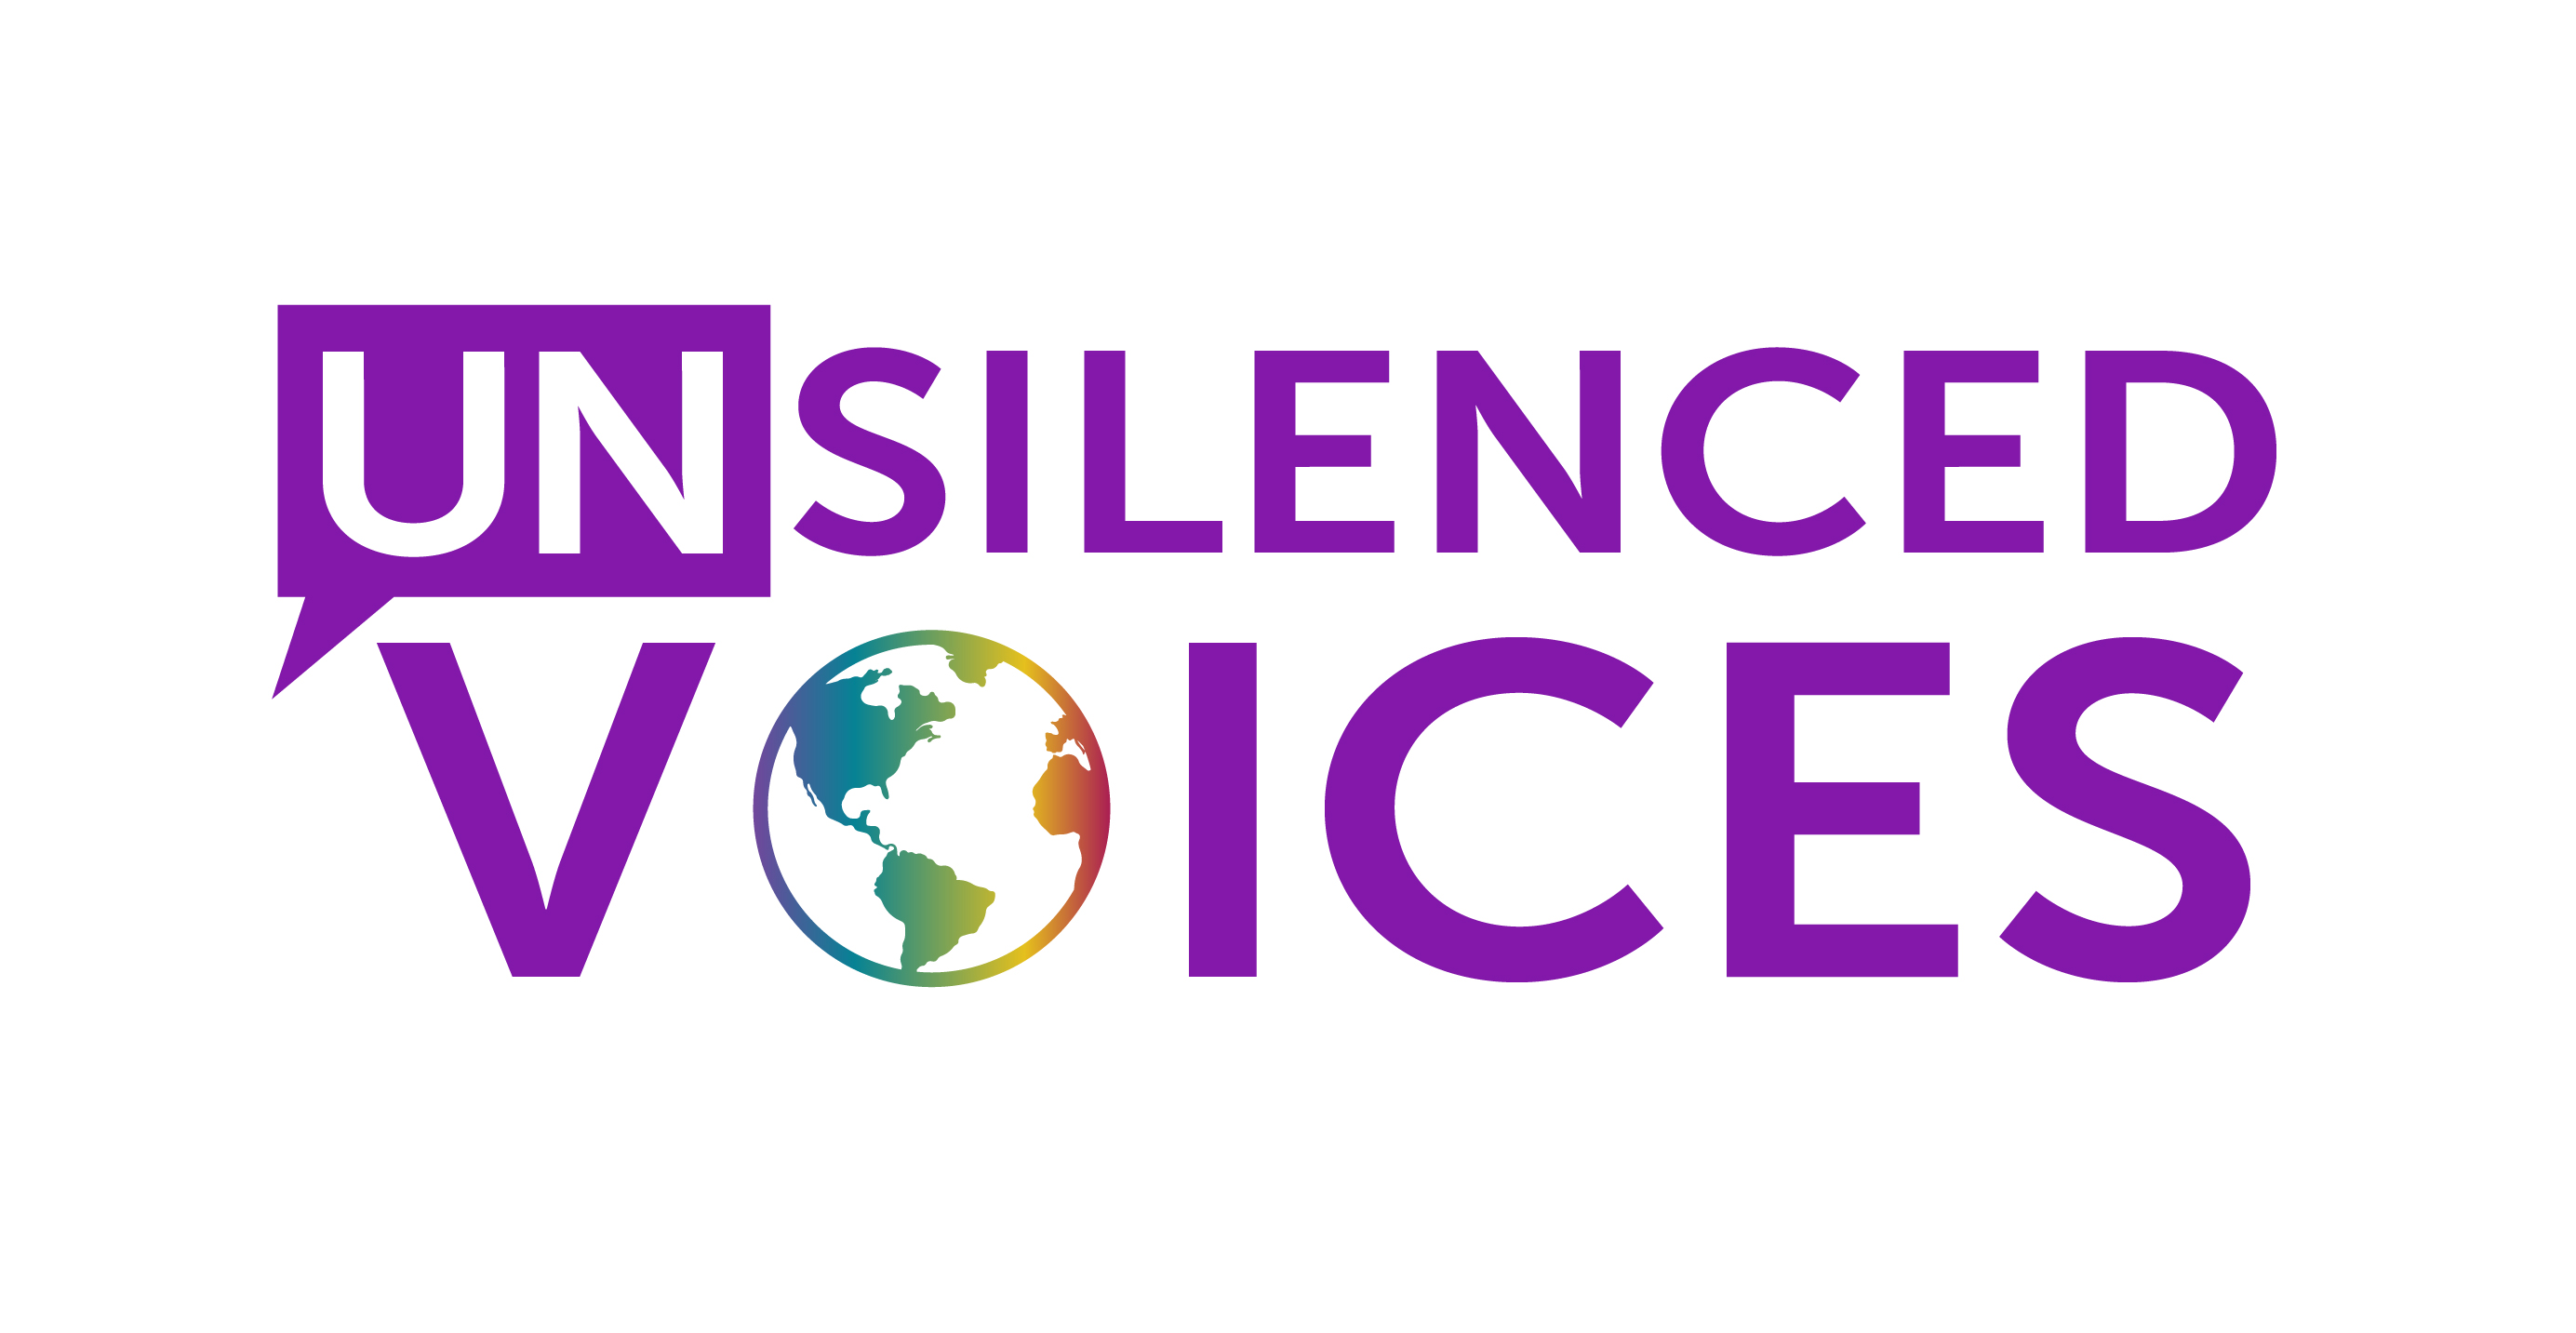 https://thebestyouexpo.com/us/wp-content/uploads/2020/01/Unsilenced_Voices_Logo-01.jpg